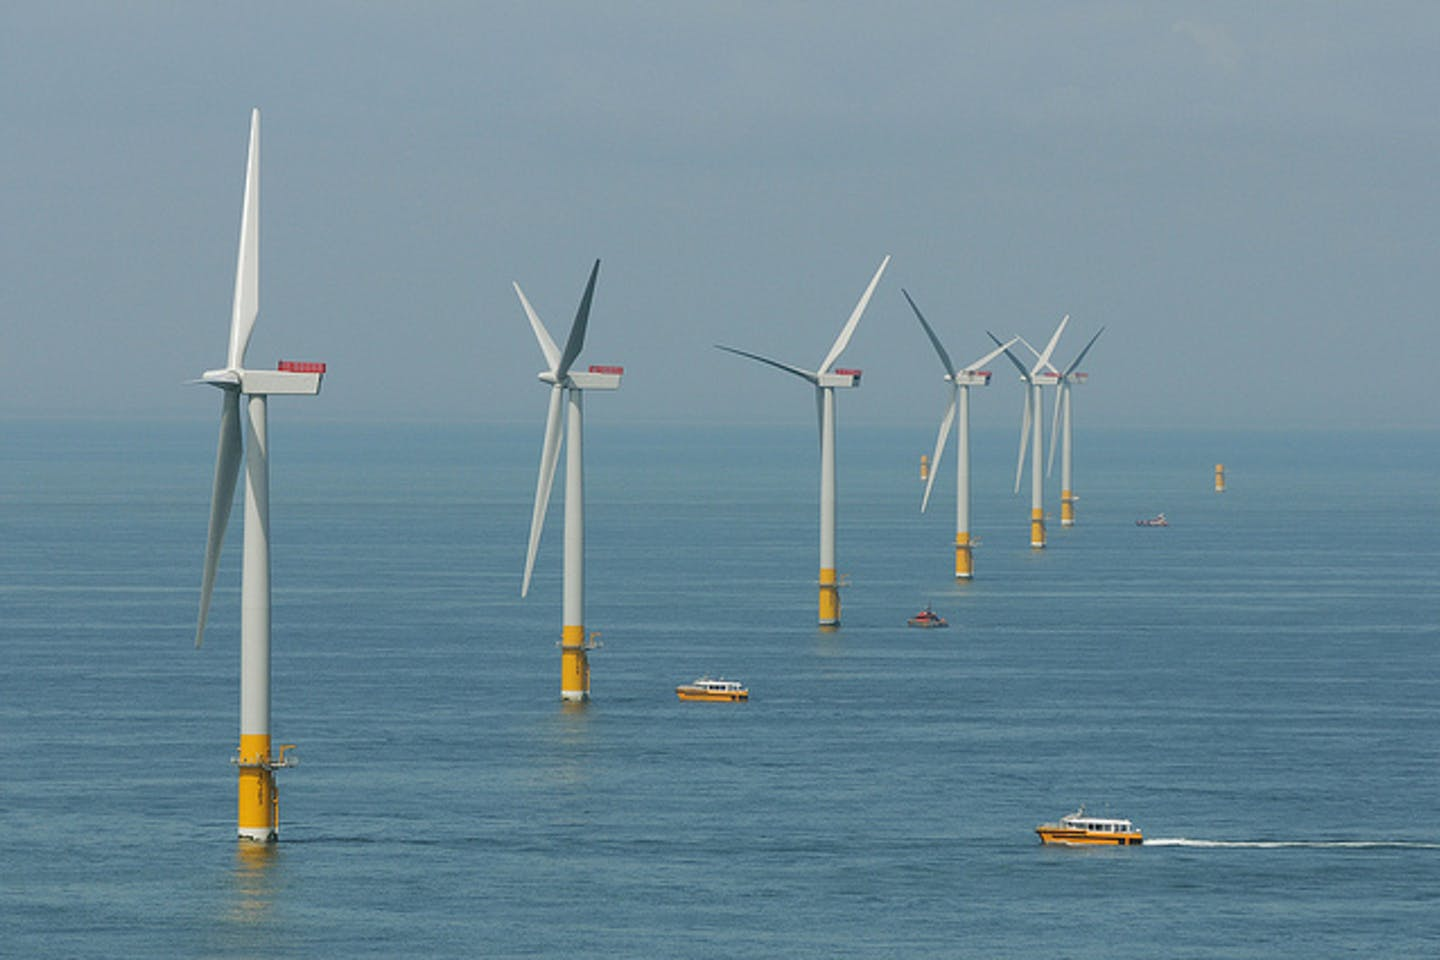 offshore wind farm suffolk england